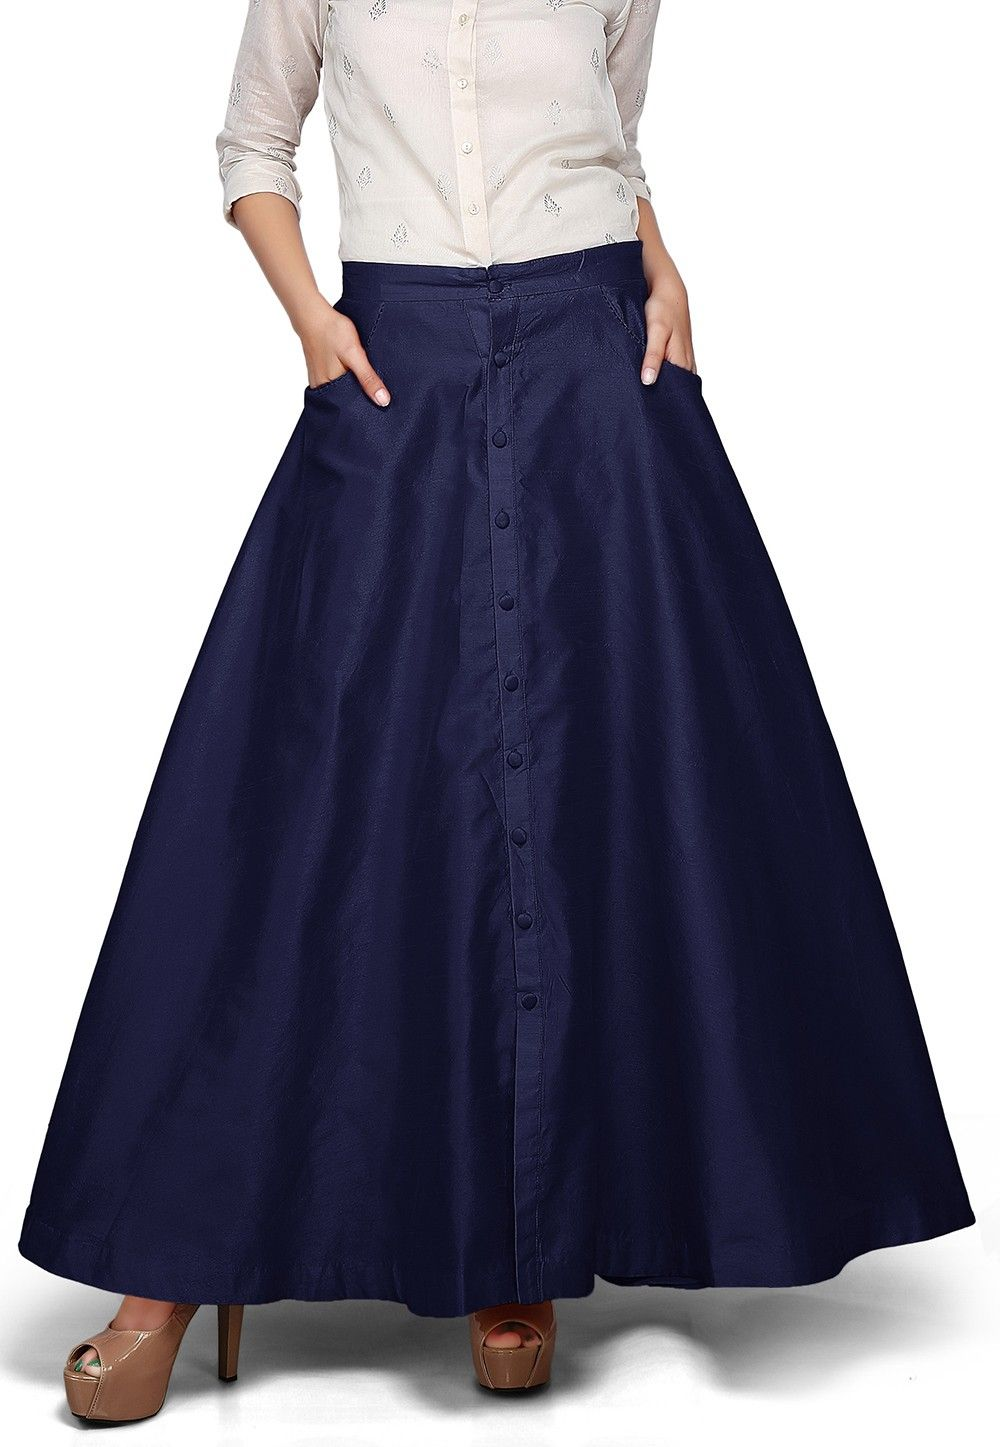 Plain Dupion Silk Long Skirt in Navy Blue : THU412